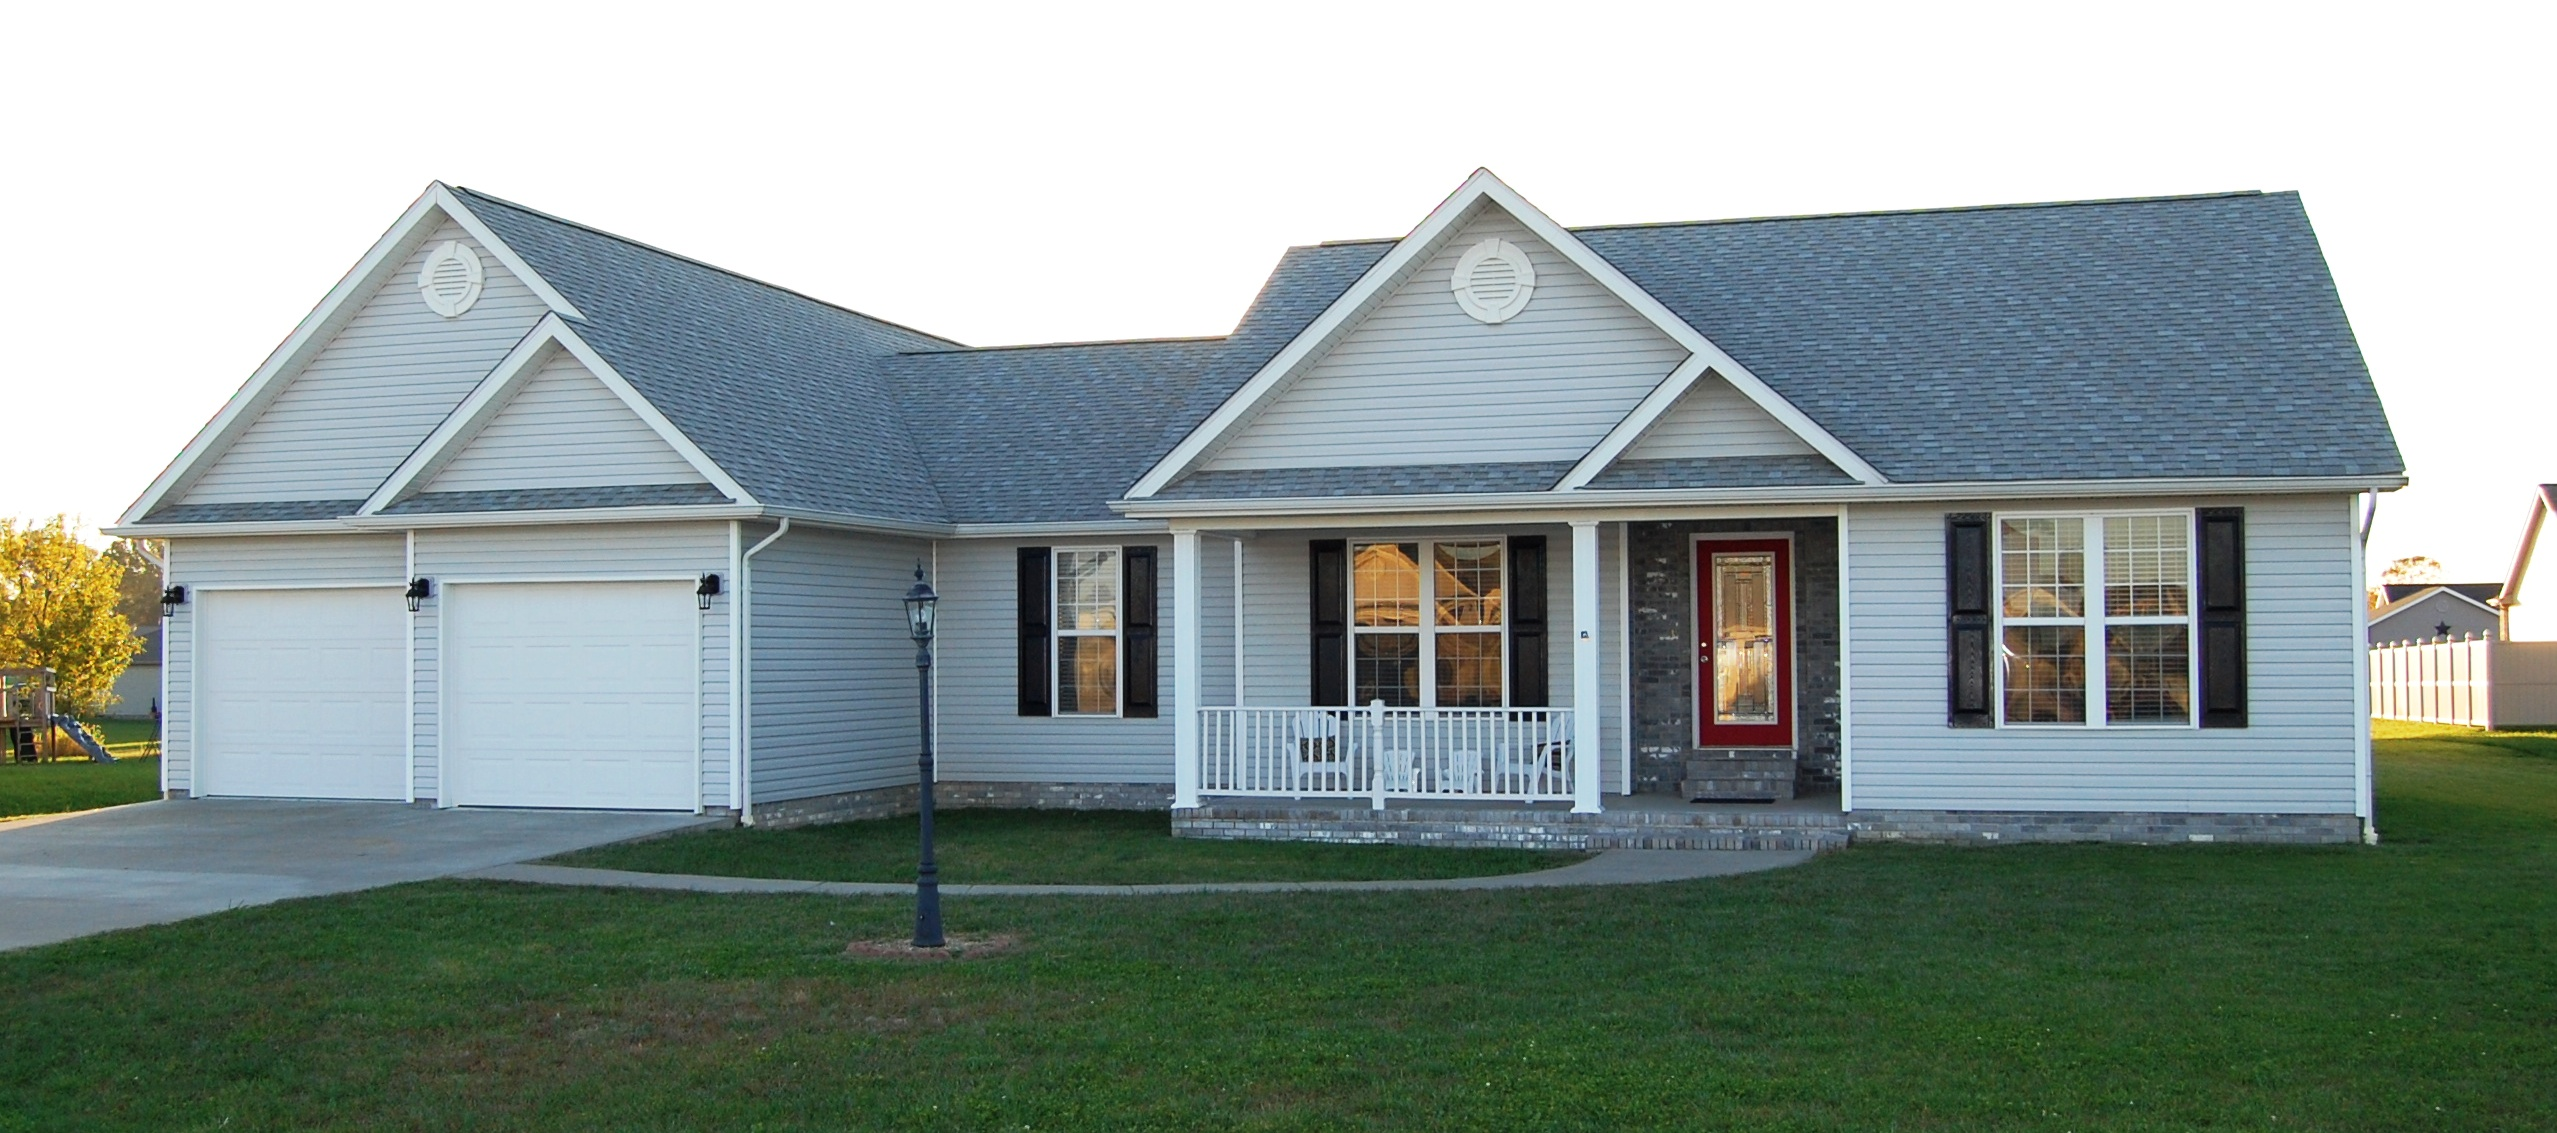 Exterior Home Makeover: Part III